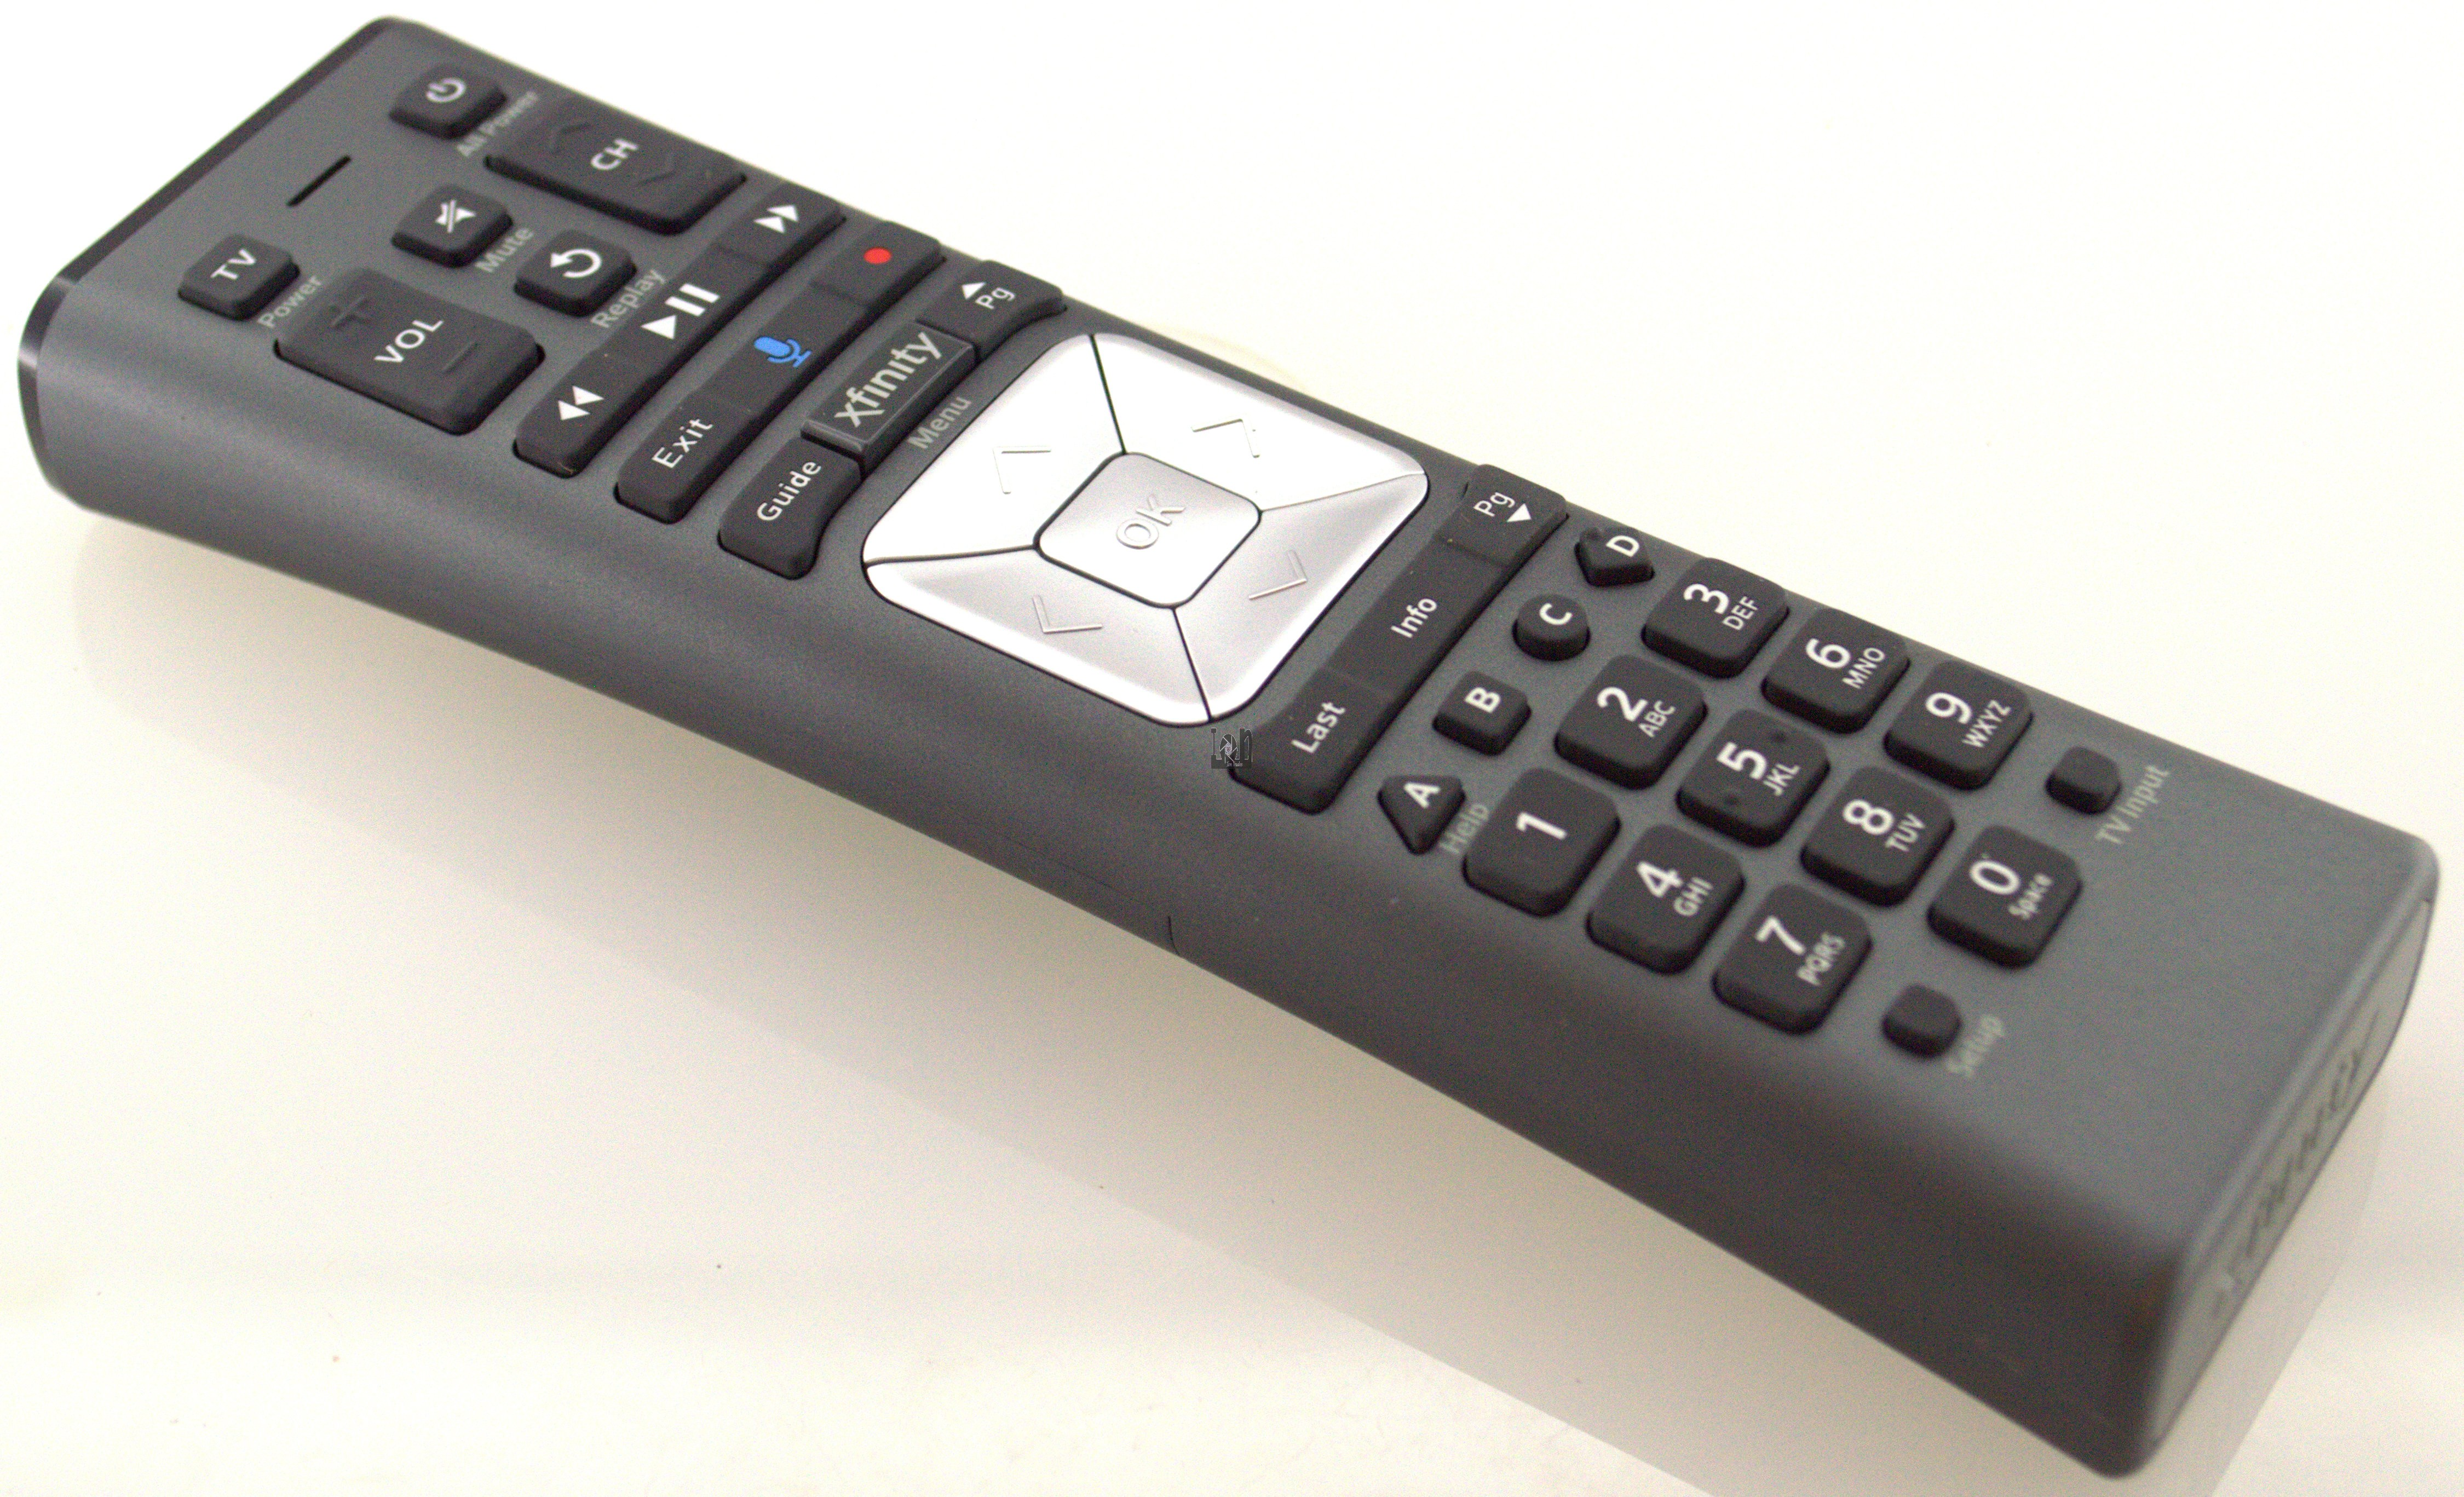 Remote codes for ROKU TVs. If you have recently bought a universal remote control or want to use your cable remote and you need the remote codes to operate your ROKU TV, we have remote codes below for your TV that should be enterenjoying.ml can program your cable or satellite universal remote control to control your Roku TV.